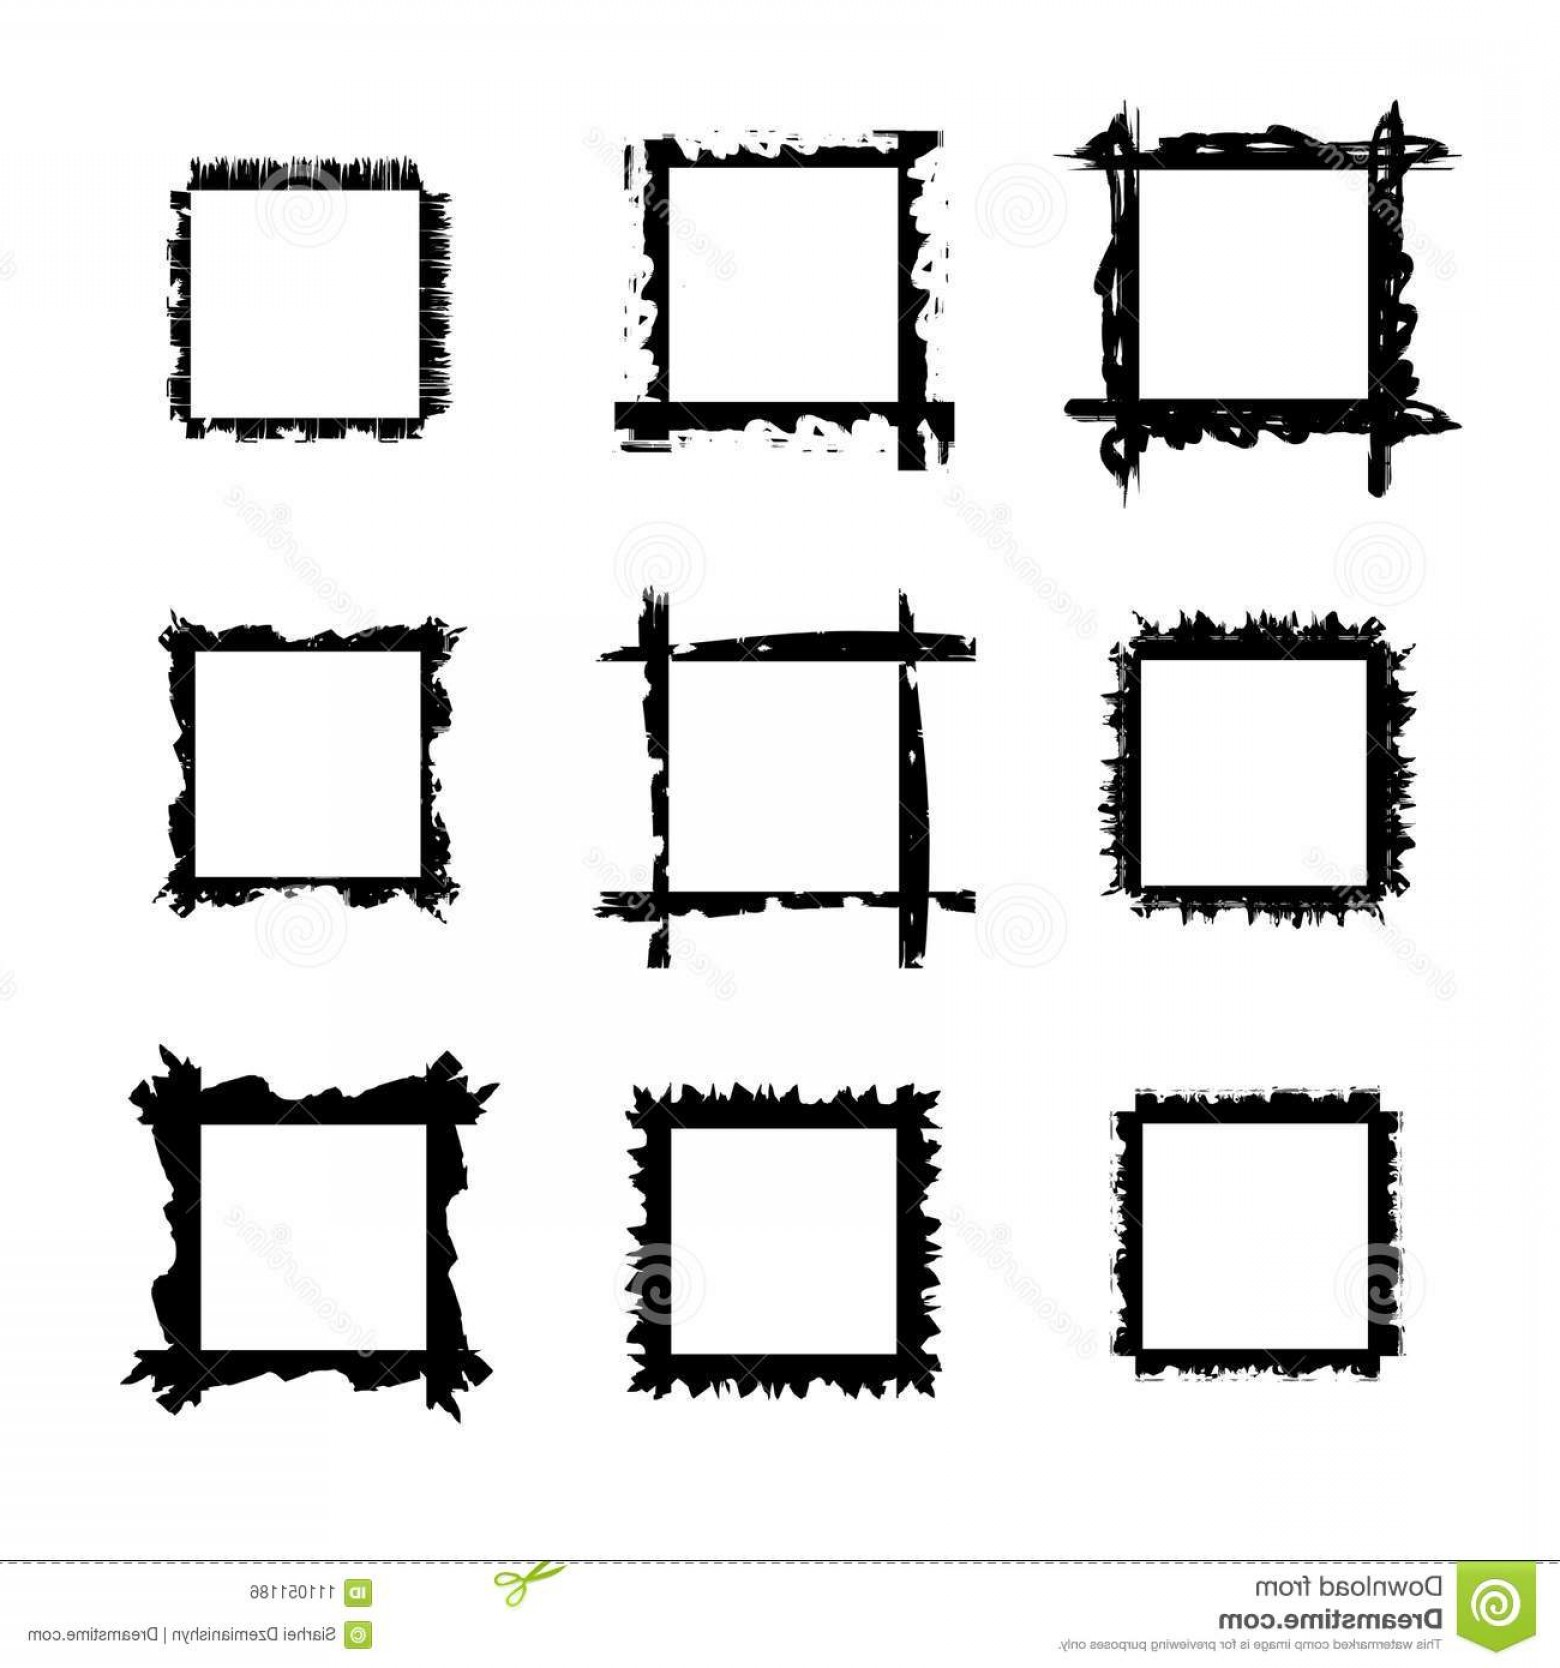 Square Black Vector Border Frame: Collection Square Black Hand Drawn Grunge Frames Borders Set Vector Illustration Isolated Over White Design Elements Image